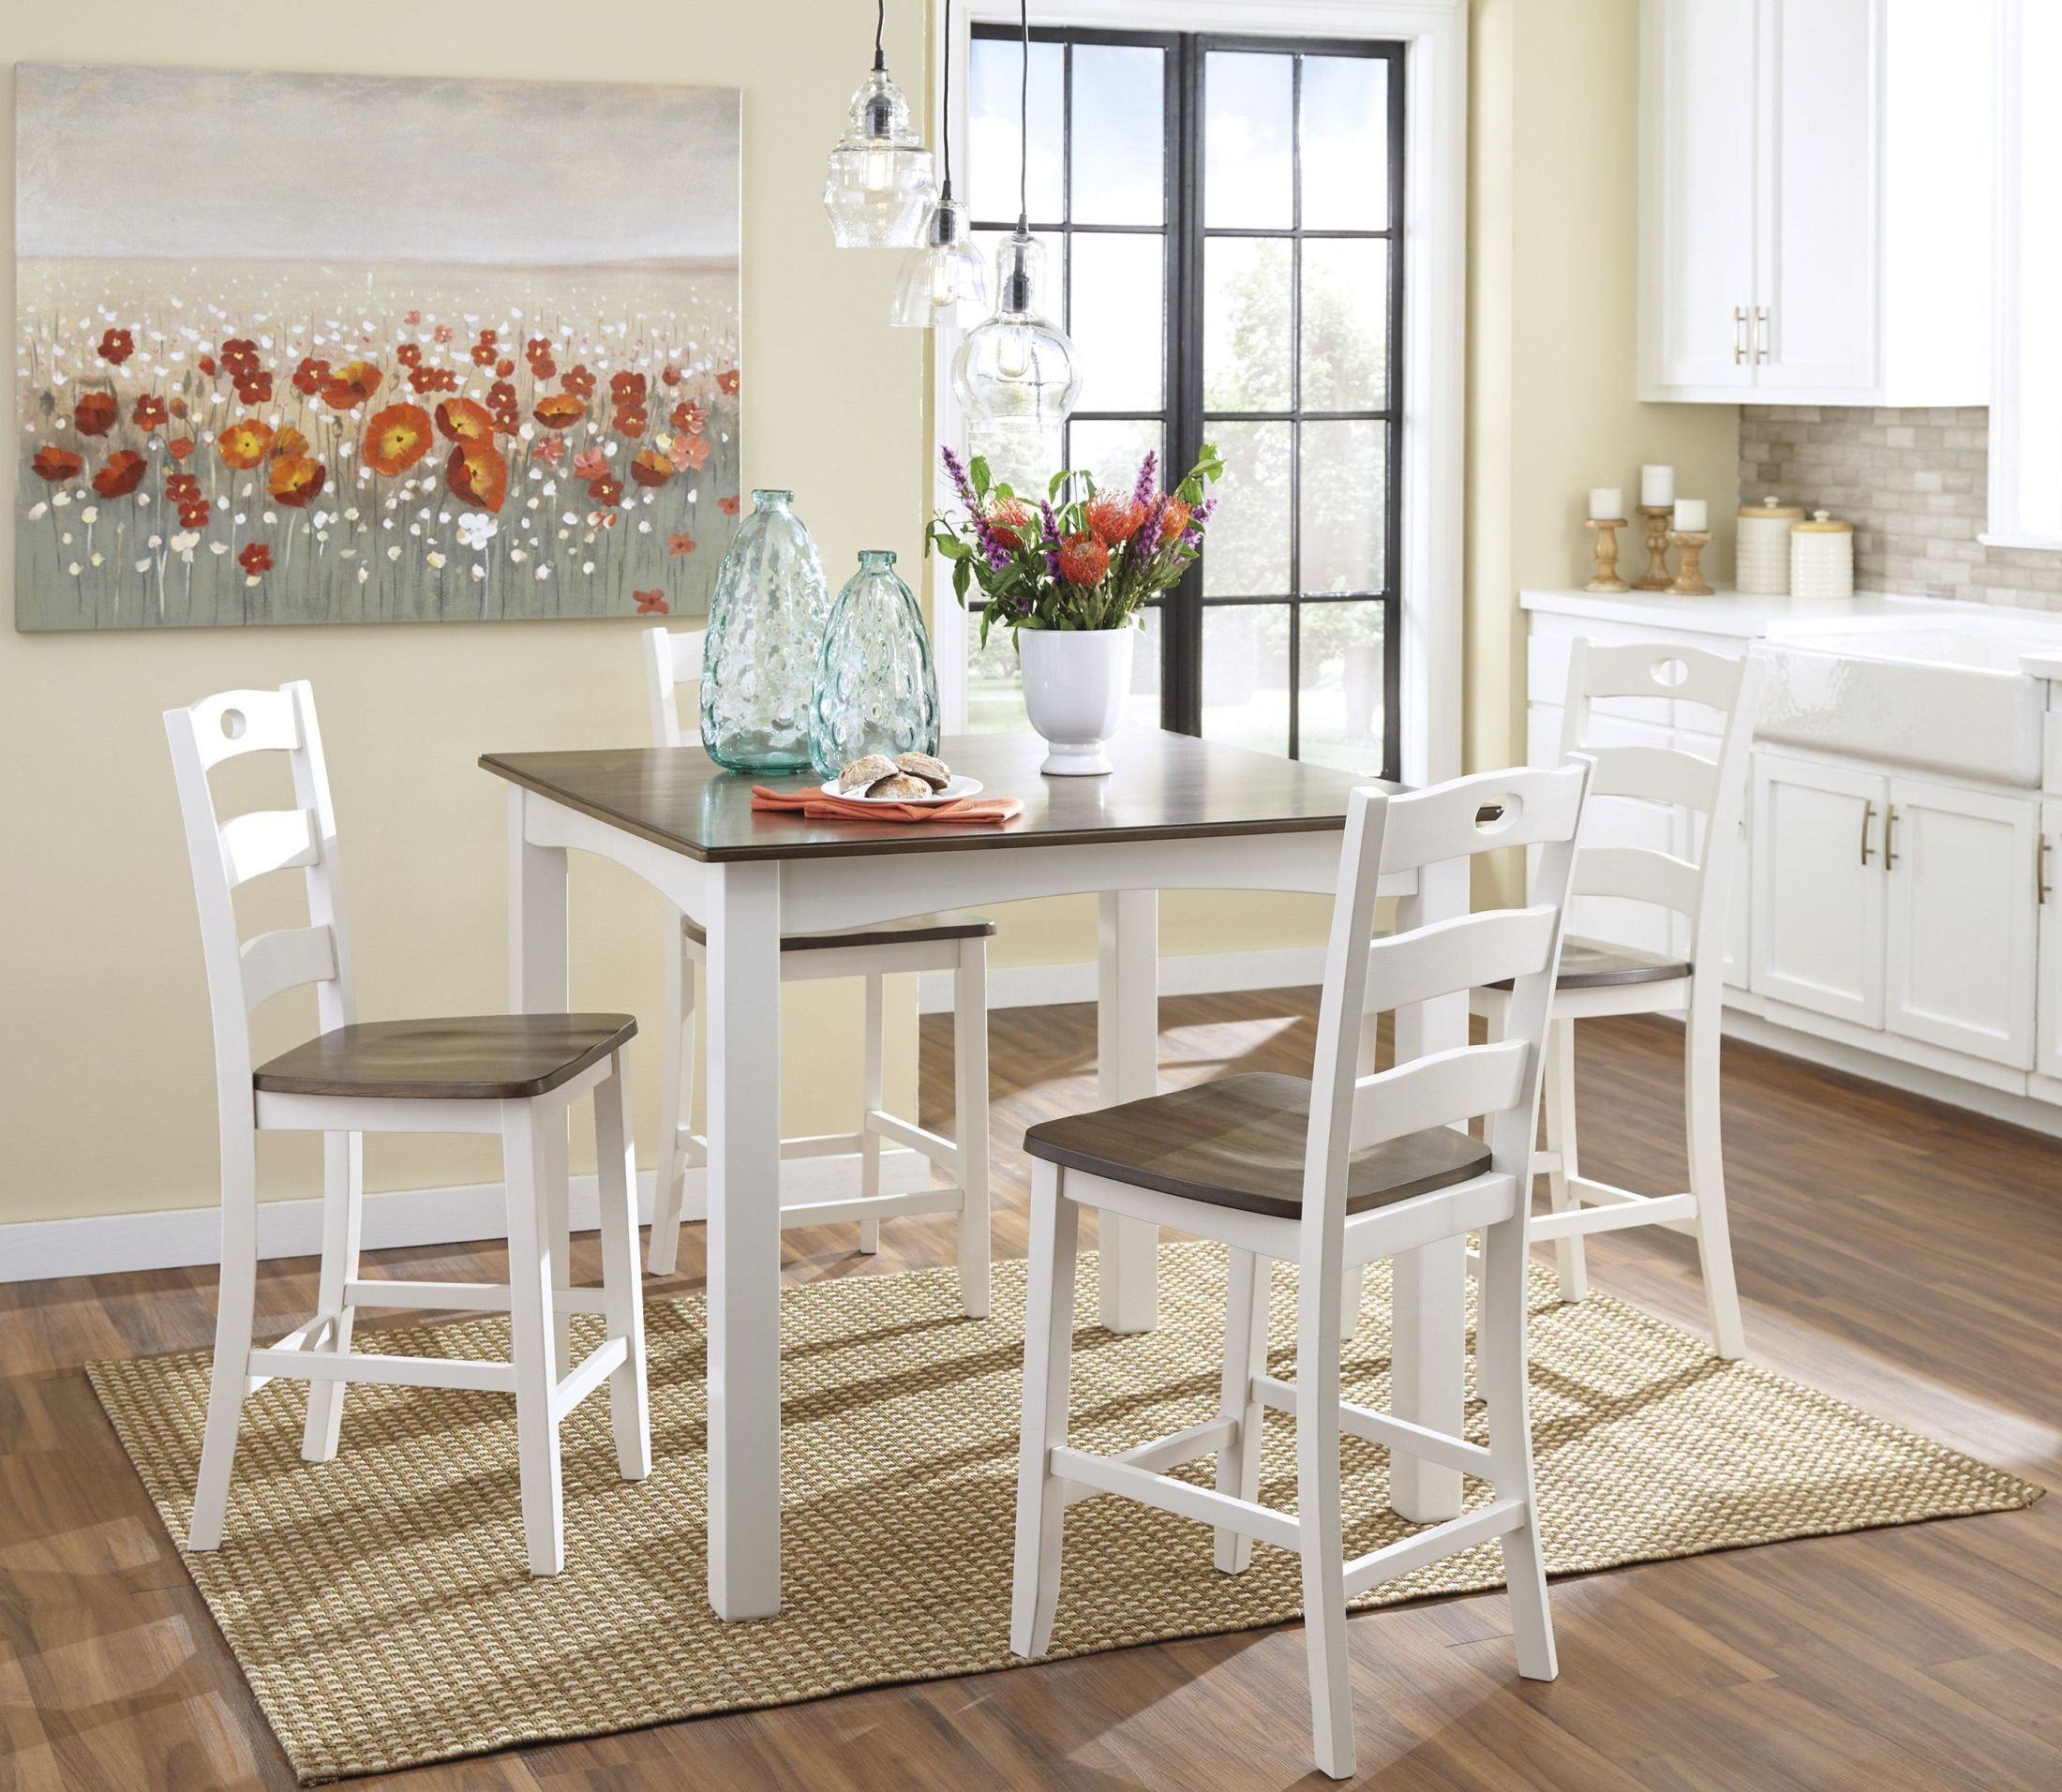 White And Brown Dining Table: Woodanville White And Brown Square Counter Height Dining